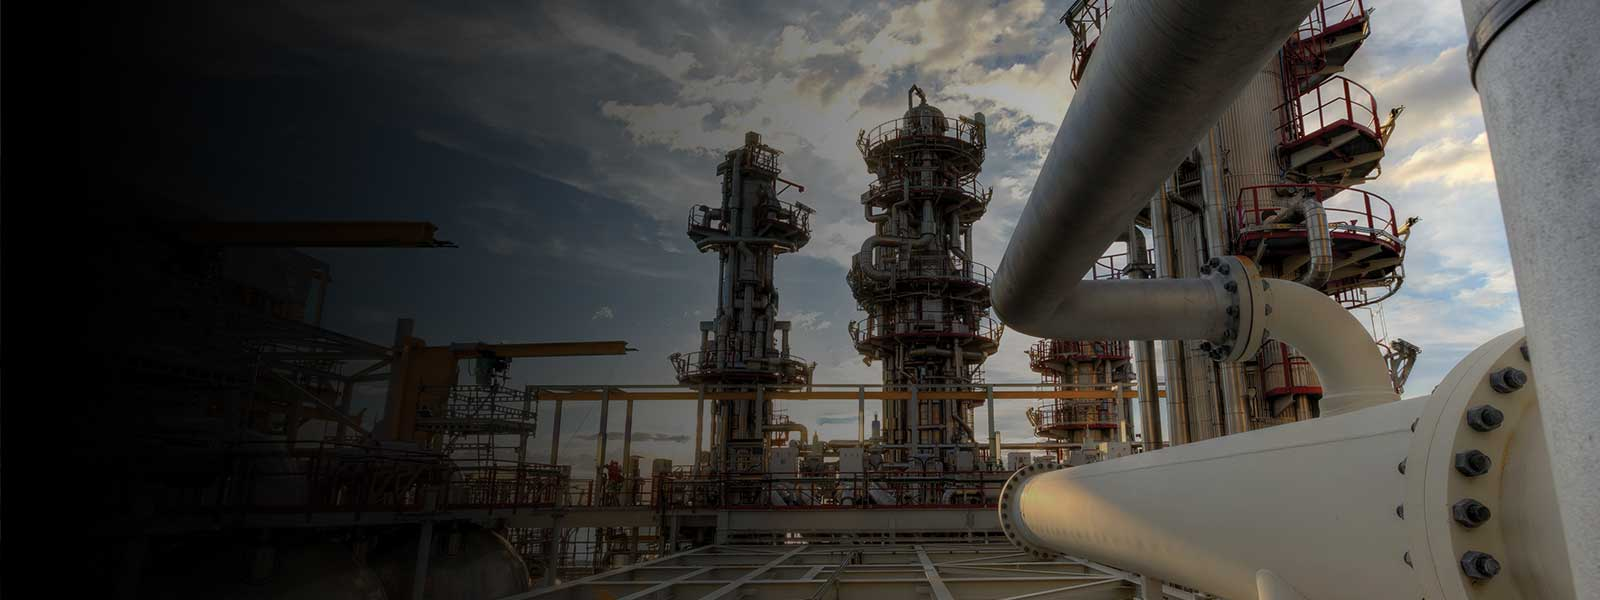 Energy dealmaking is fueled by oil and power